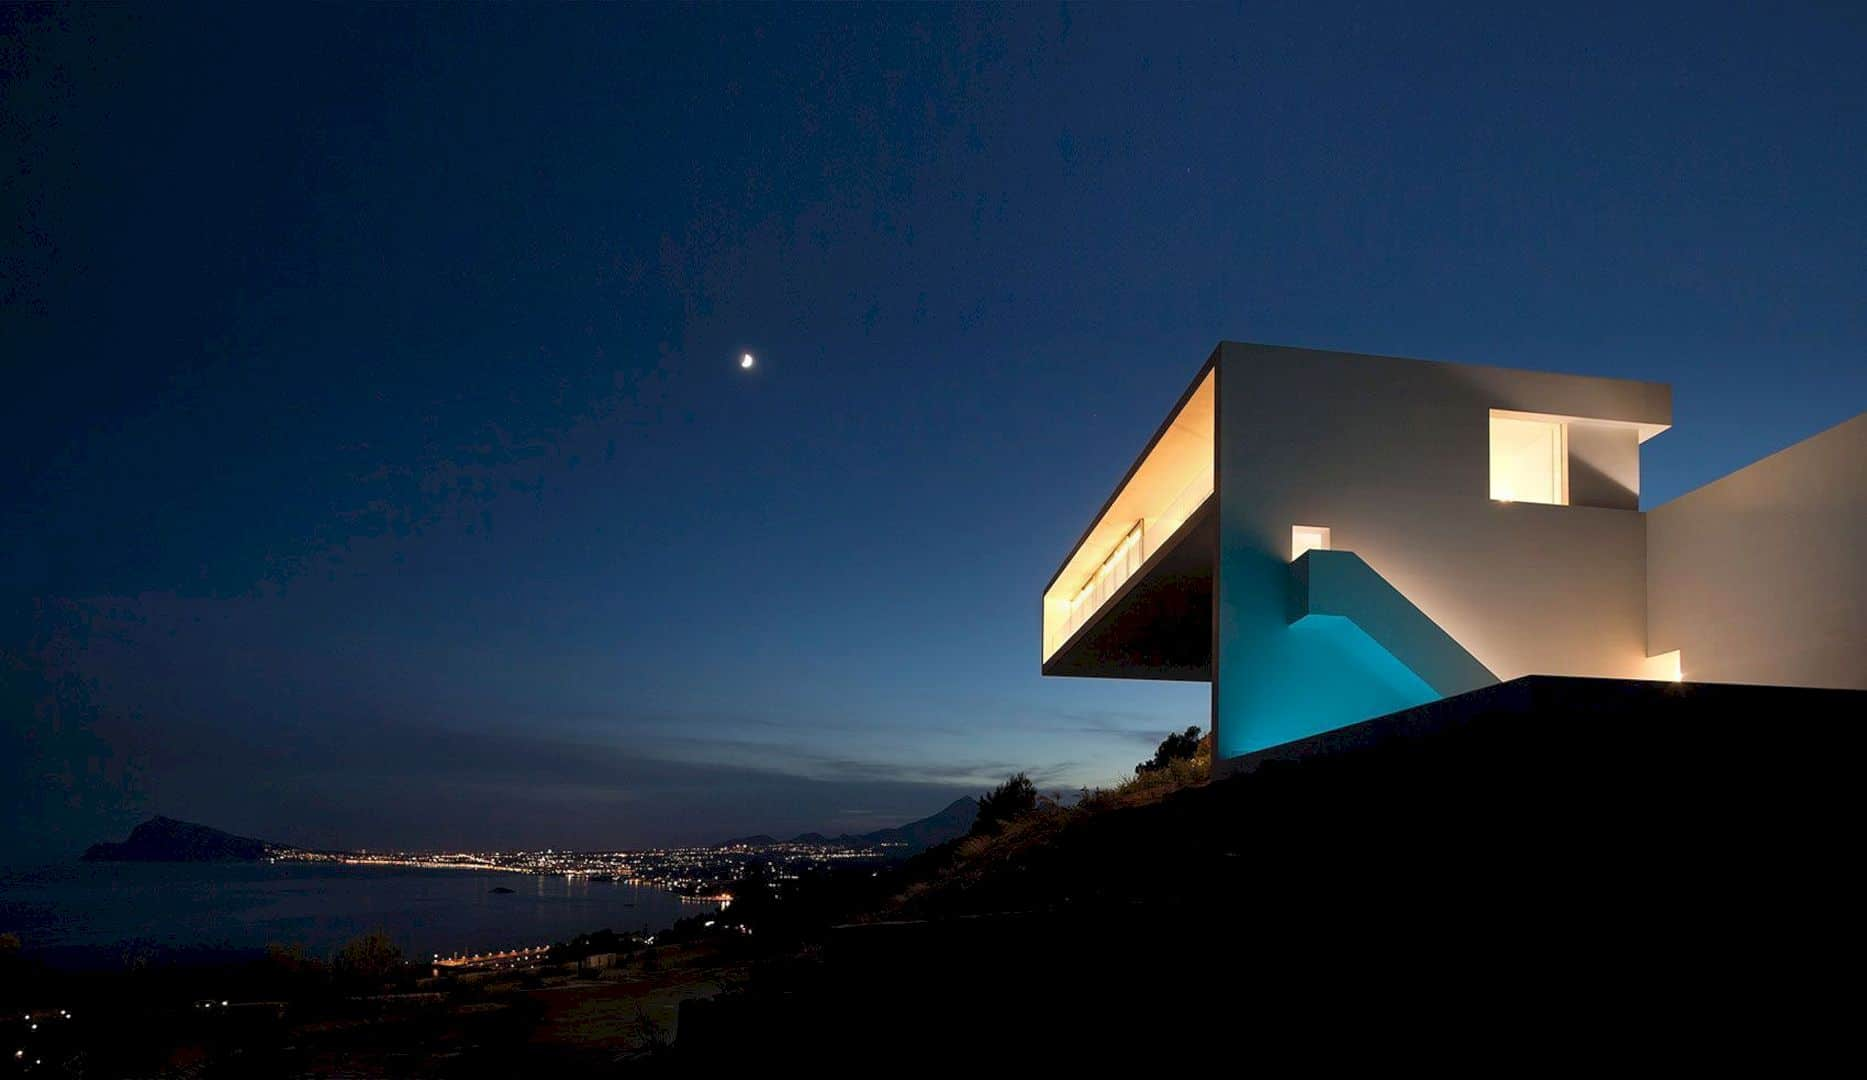 HOUSE ON THE CLIFF 4